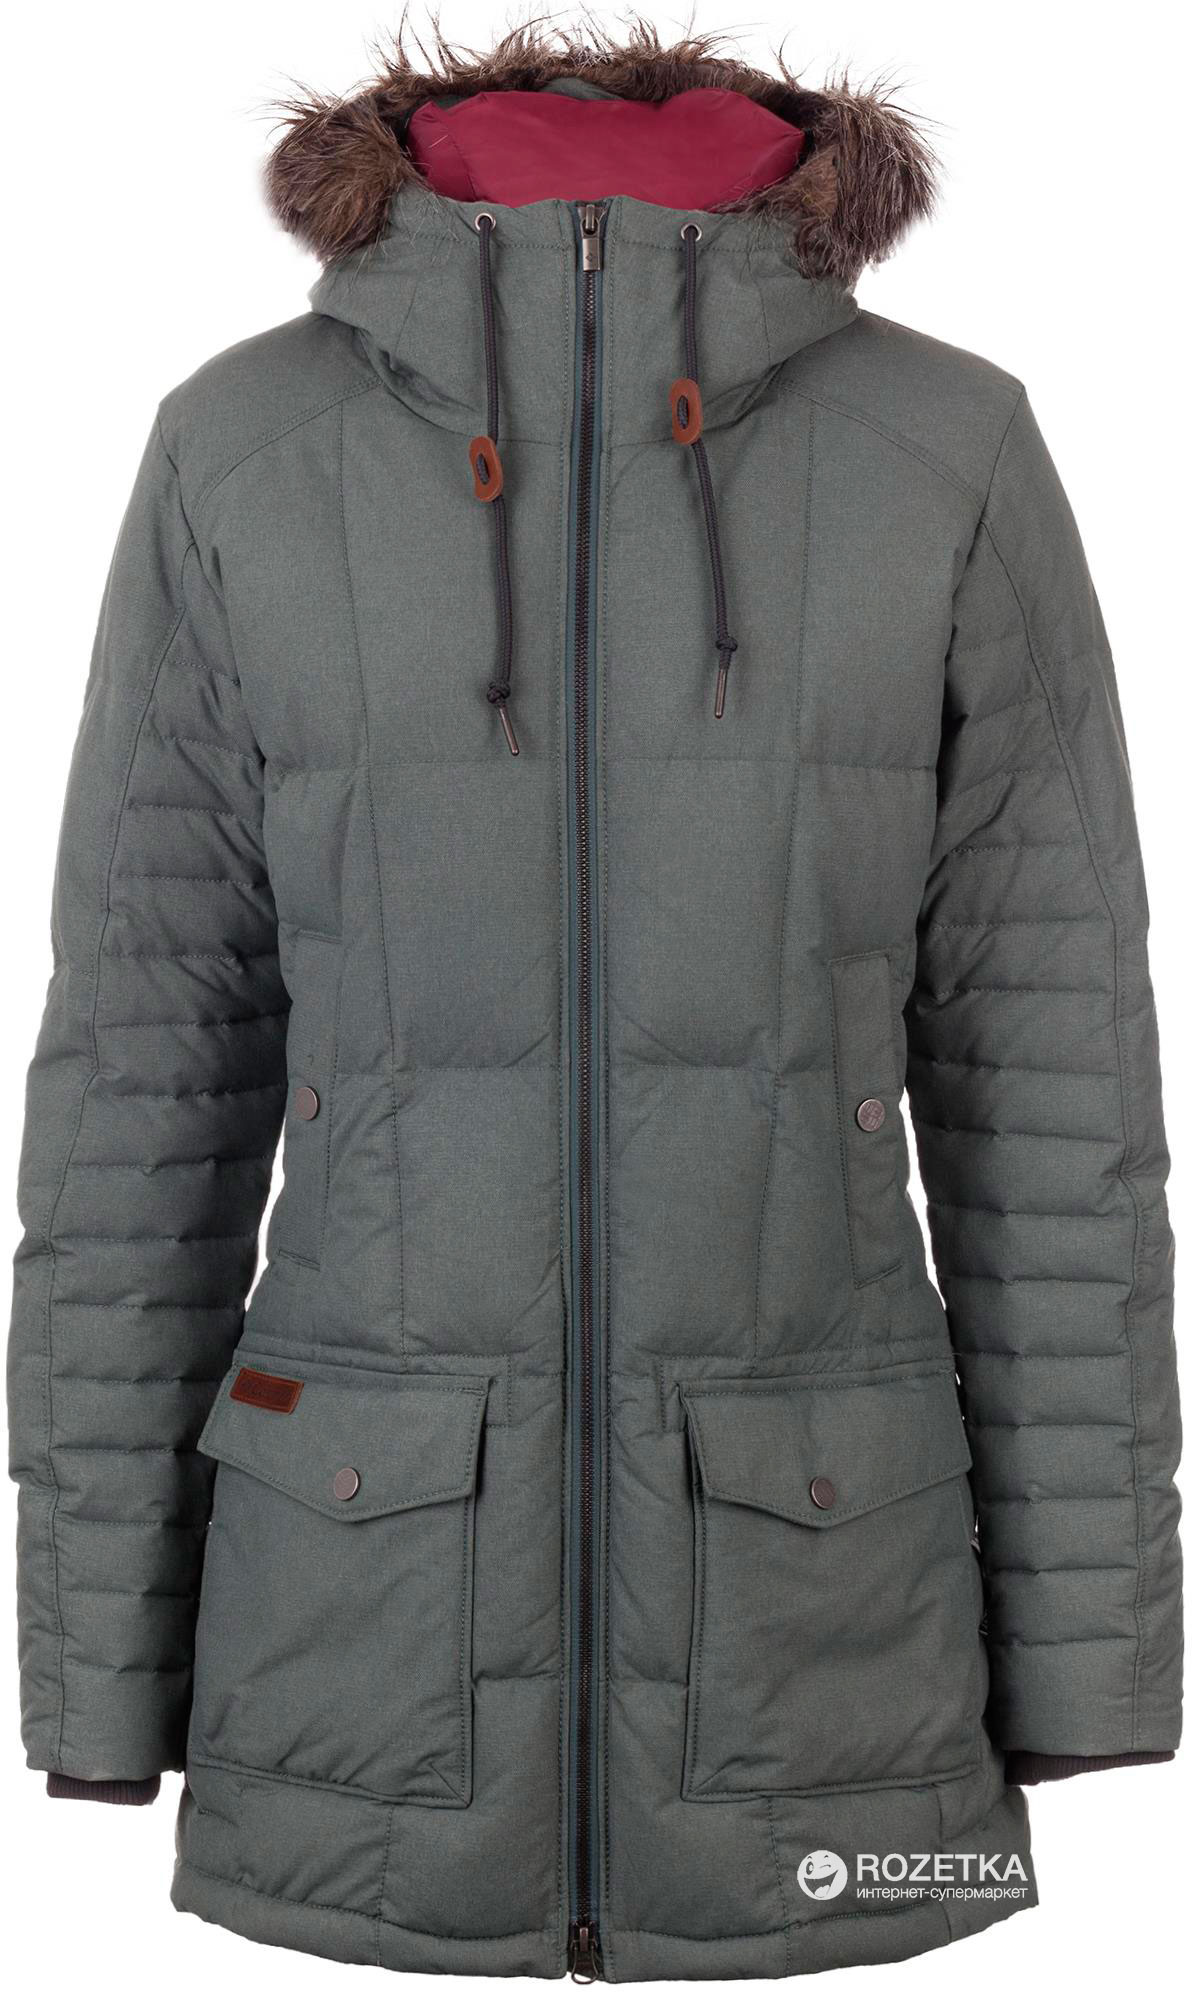 11311626. Пуховик Columbia Della Fall Mid Jacket Womens Down ... e7dd0bad8795f